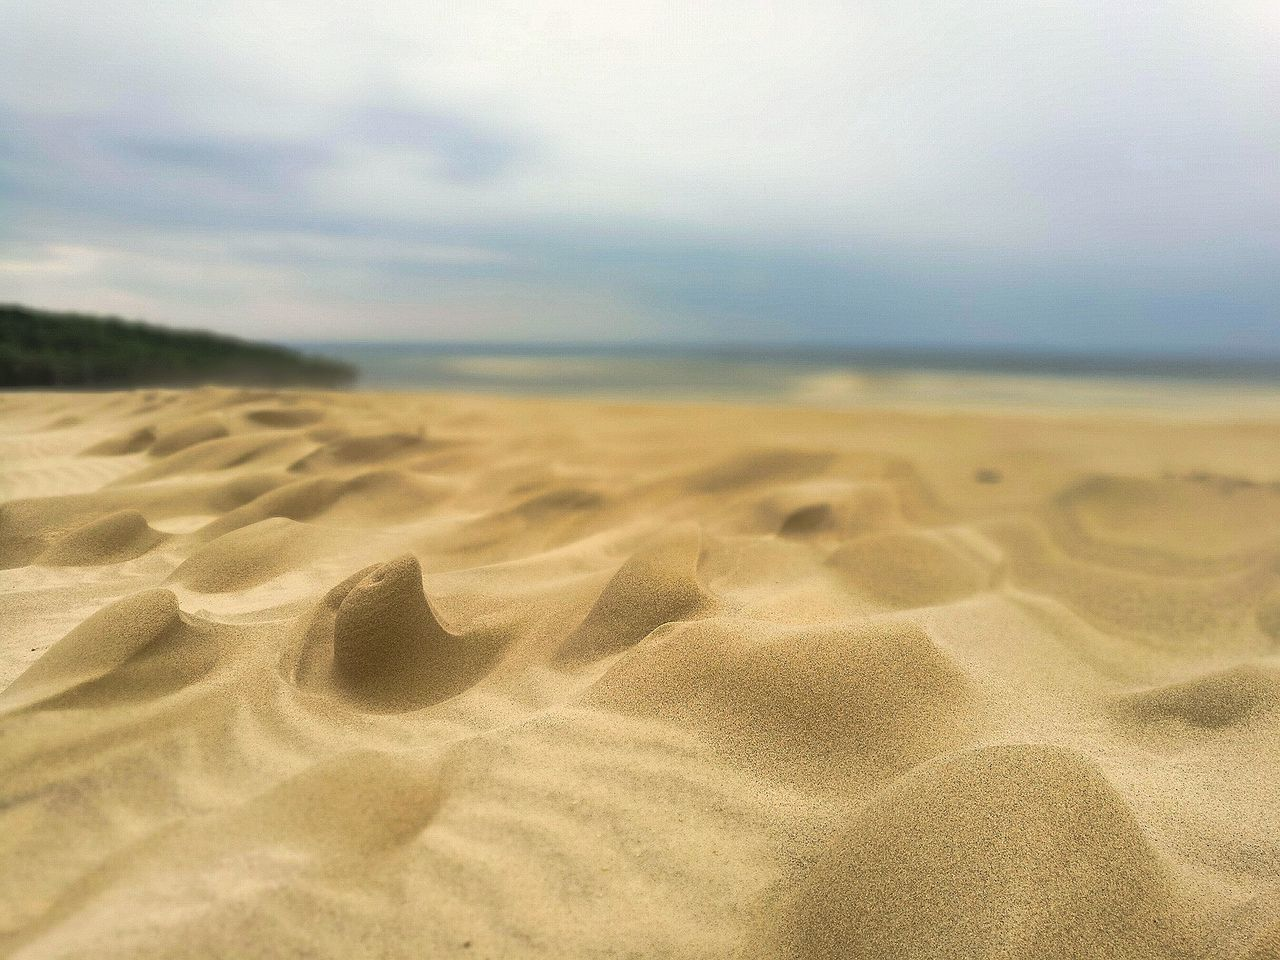 Sand Beach Sand Dune Nature Tranquility No People Day Sky Outdoors Beauty In Nature Close-up Sea Arid Climate Backgrounds Dune Du Pyla Travel Photography Travel Destinations Travelphotography Traveling Travel France